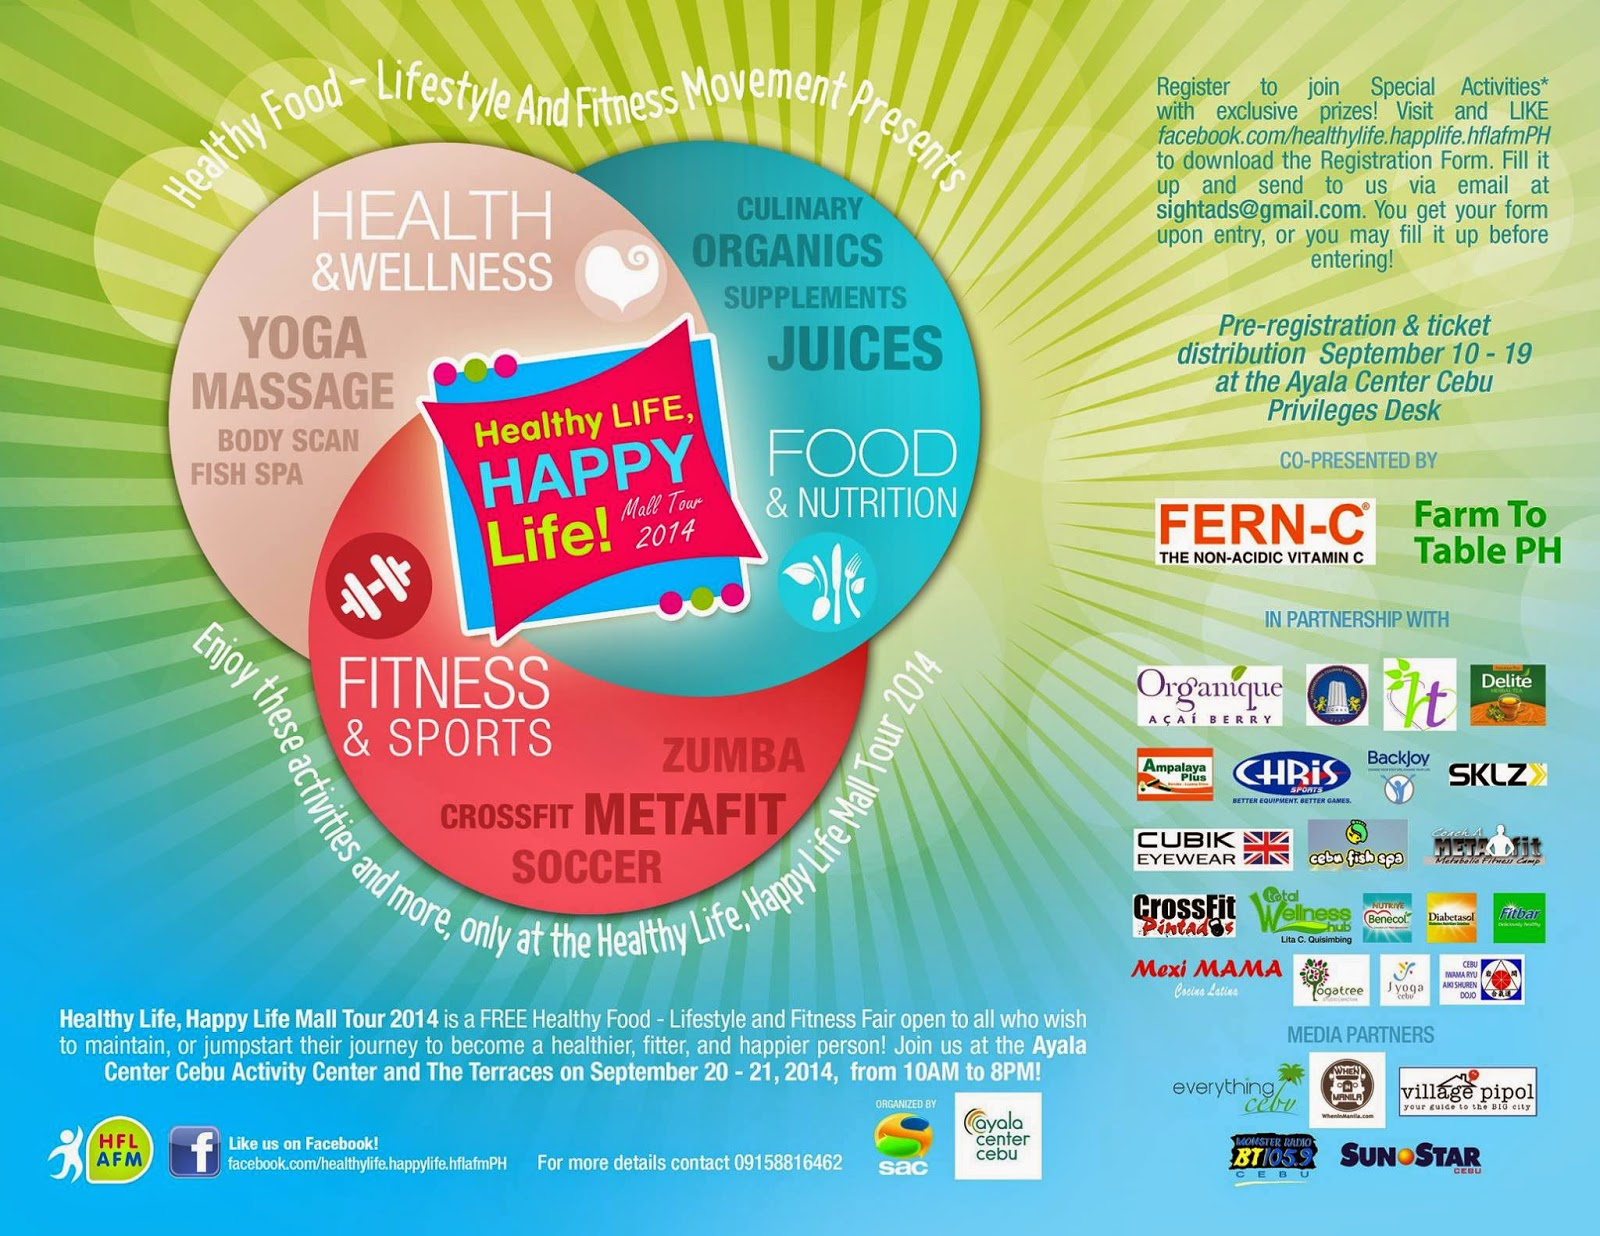 Healthy-Life-Happy-Life-Mall-Tour-2014